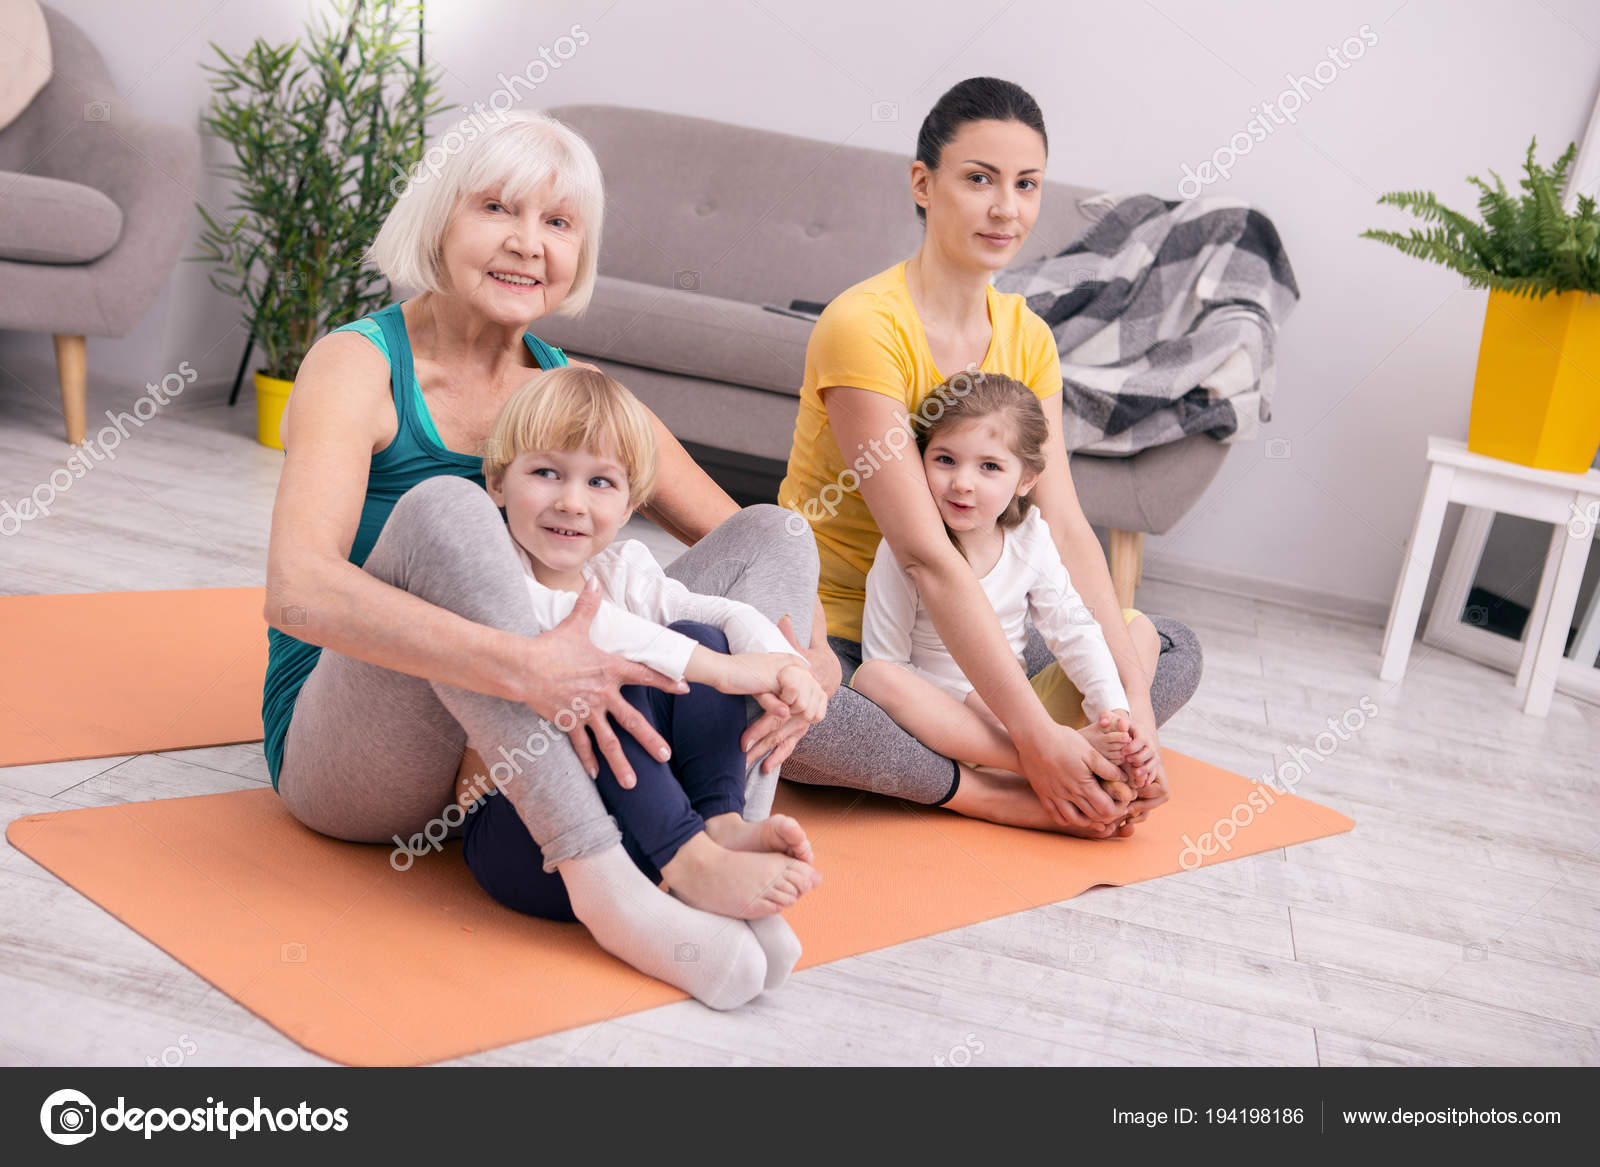 Smiling women and kids doing yoga — Stock Photo © yacobchuk1